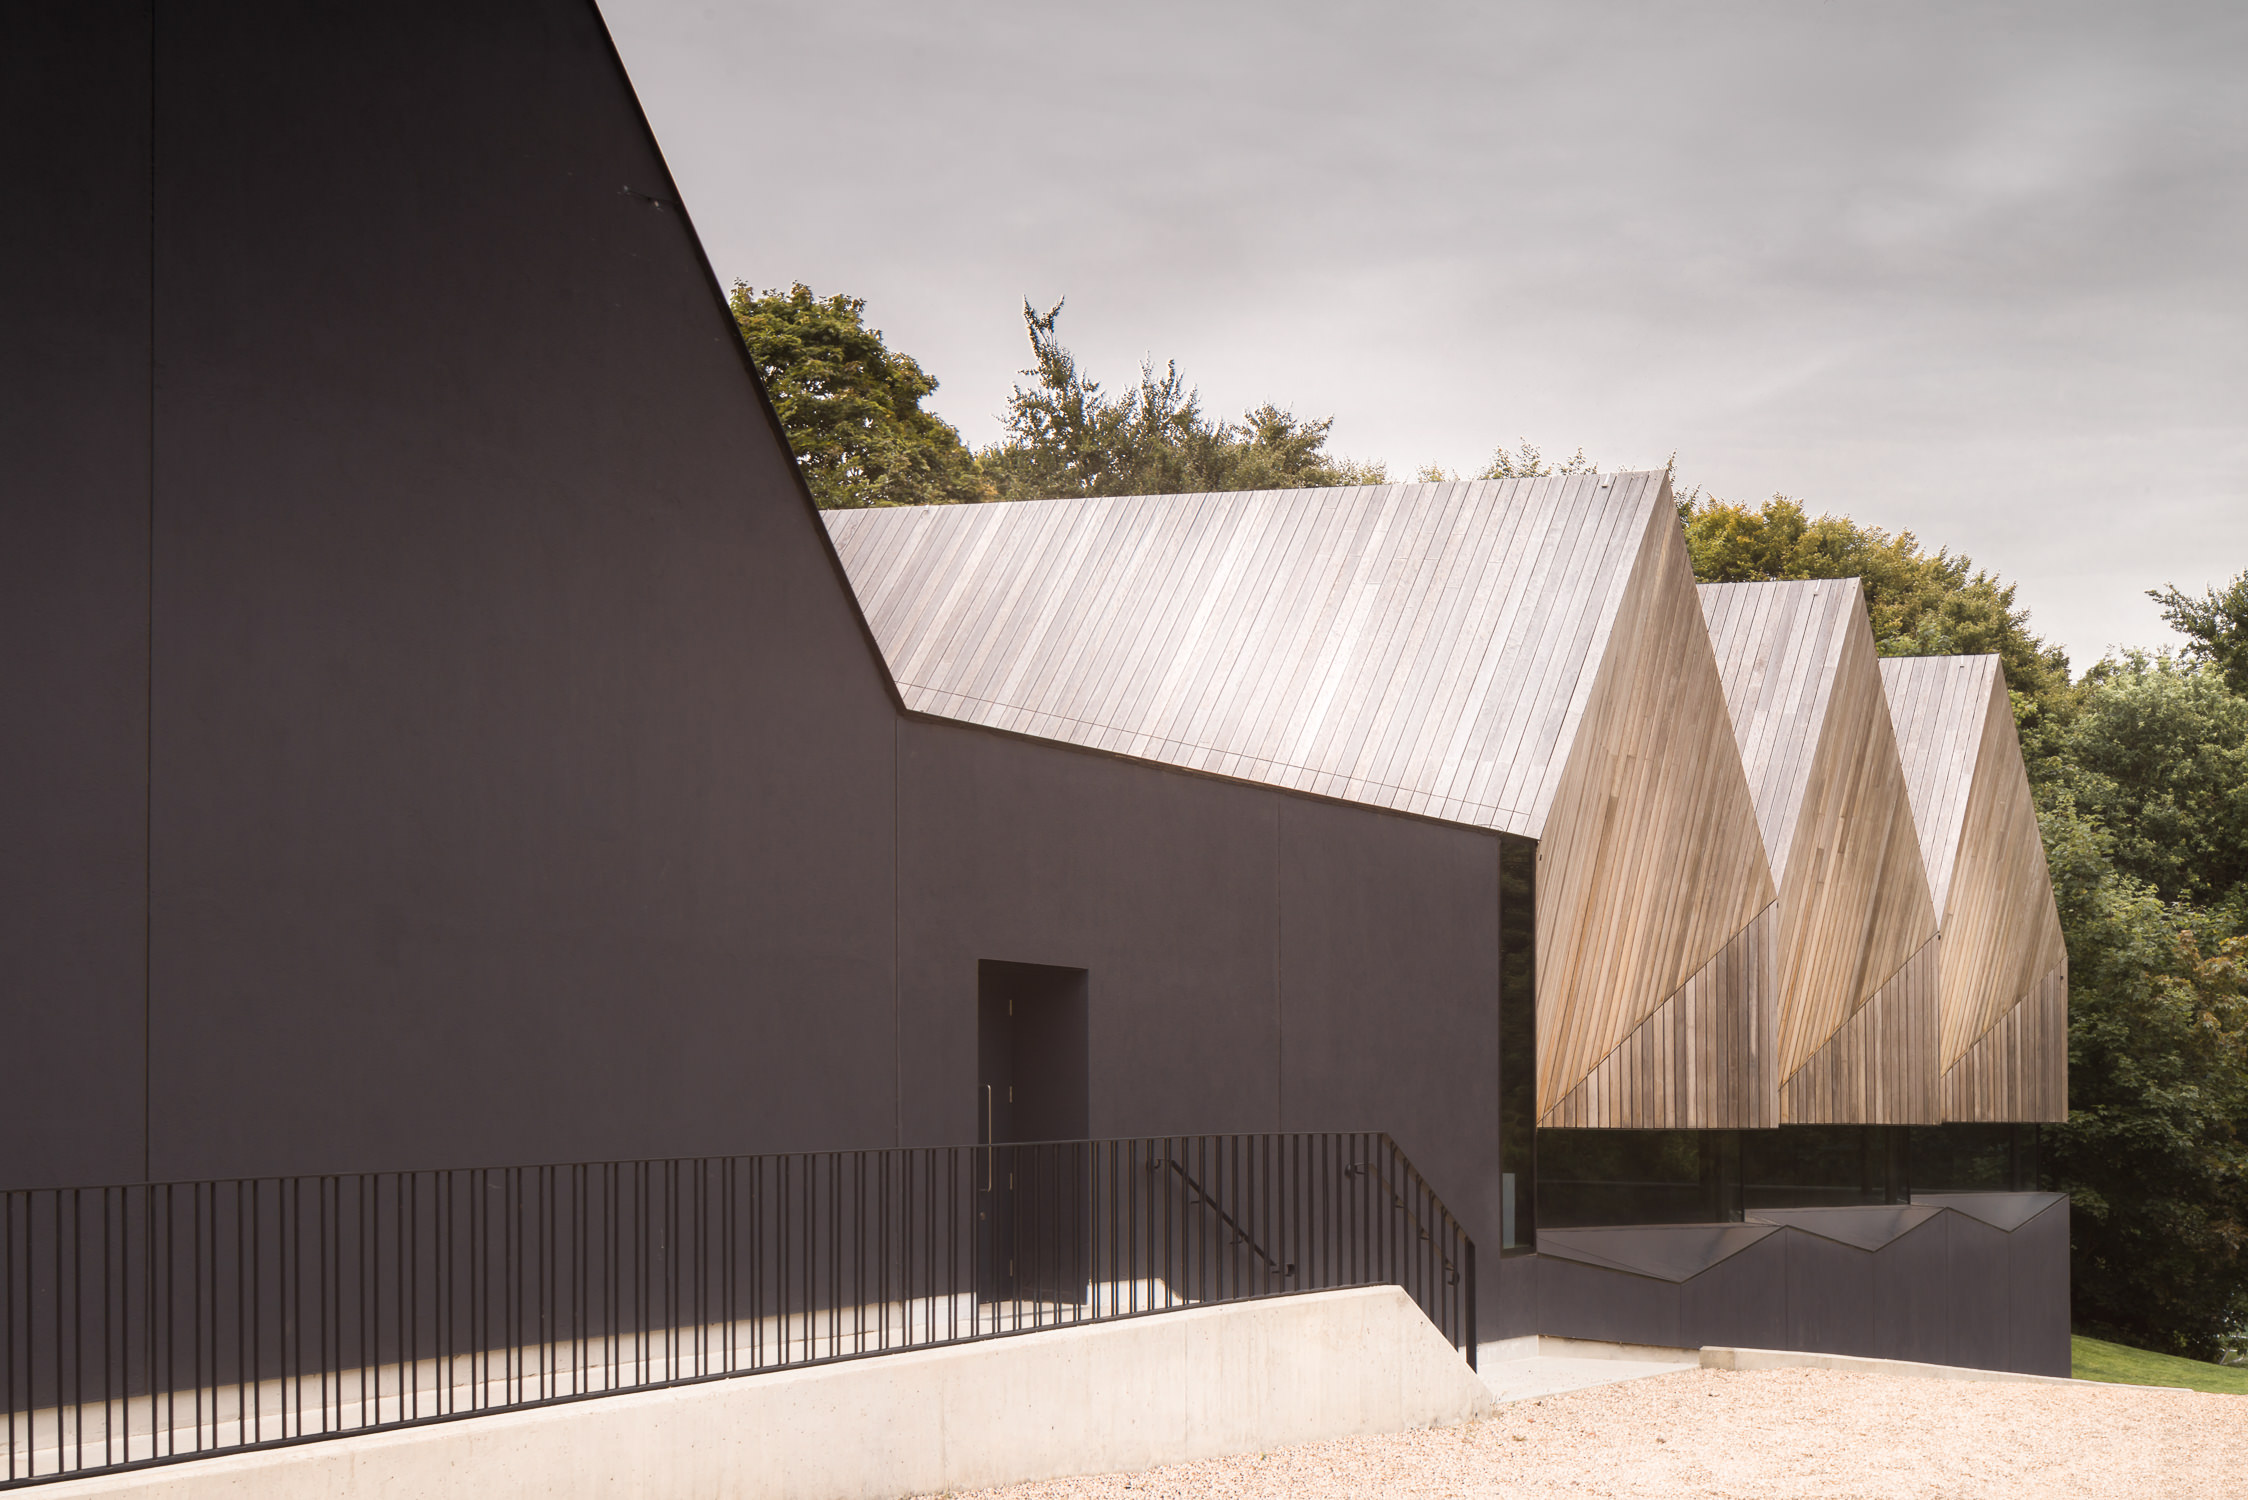 Alfriston School by Duggan Morris Architects - Architecture Photography London